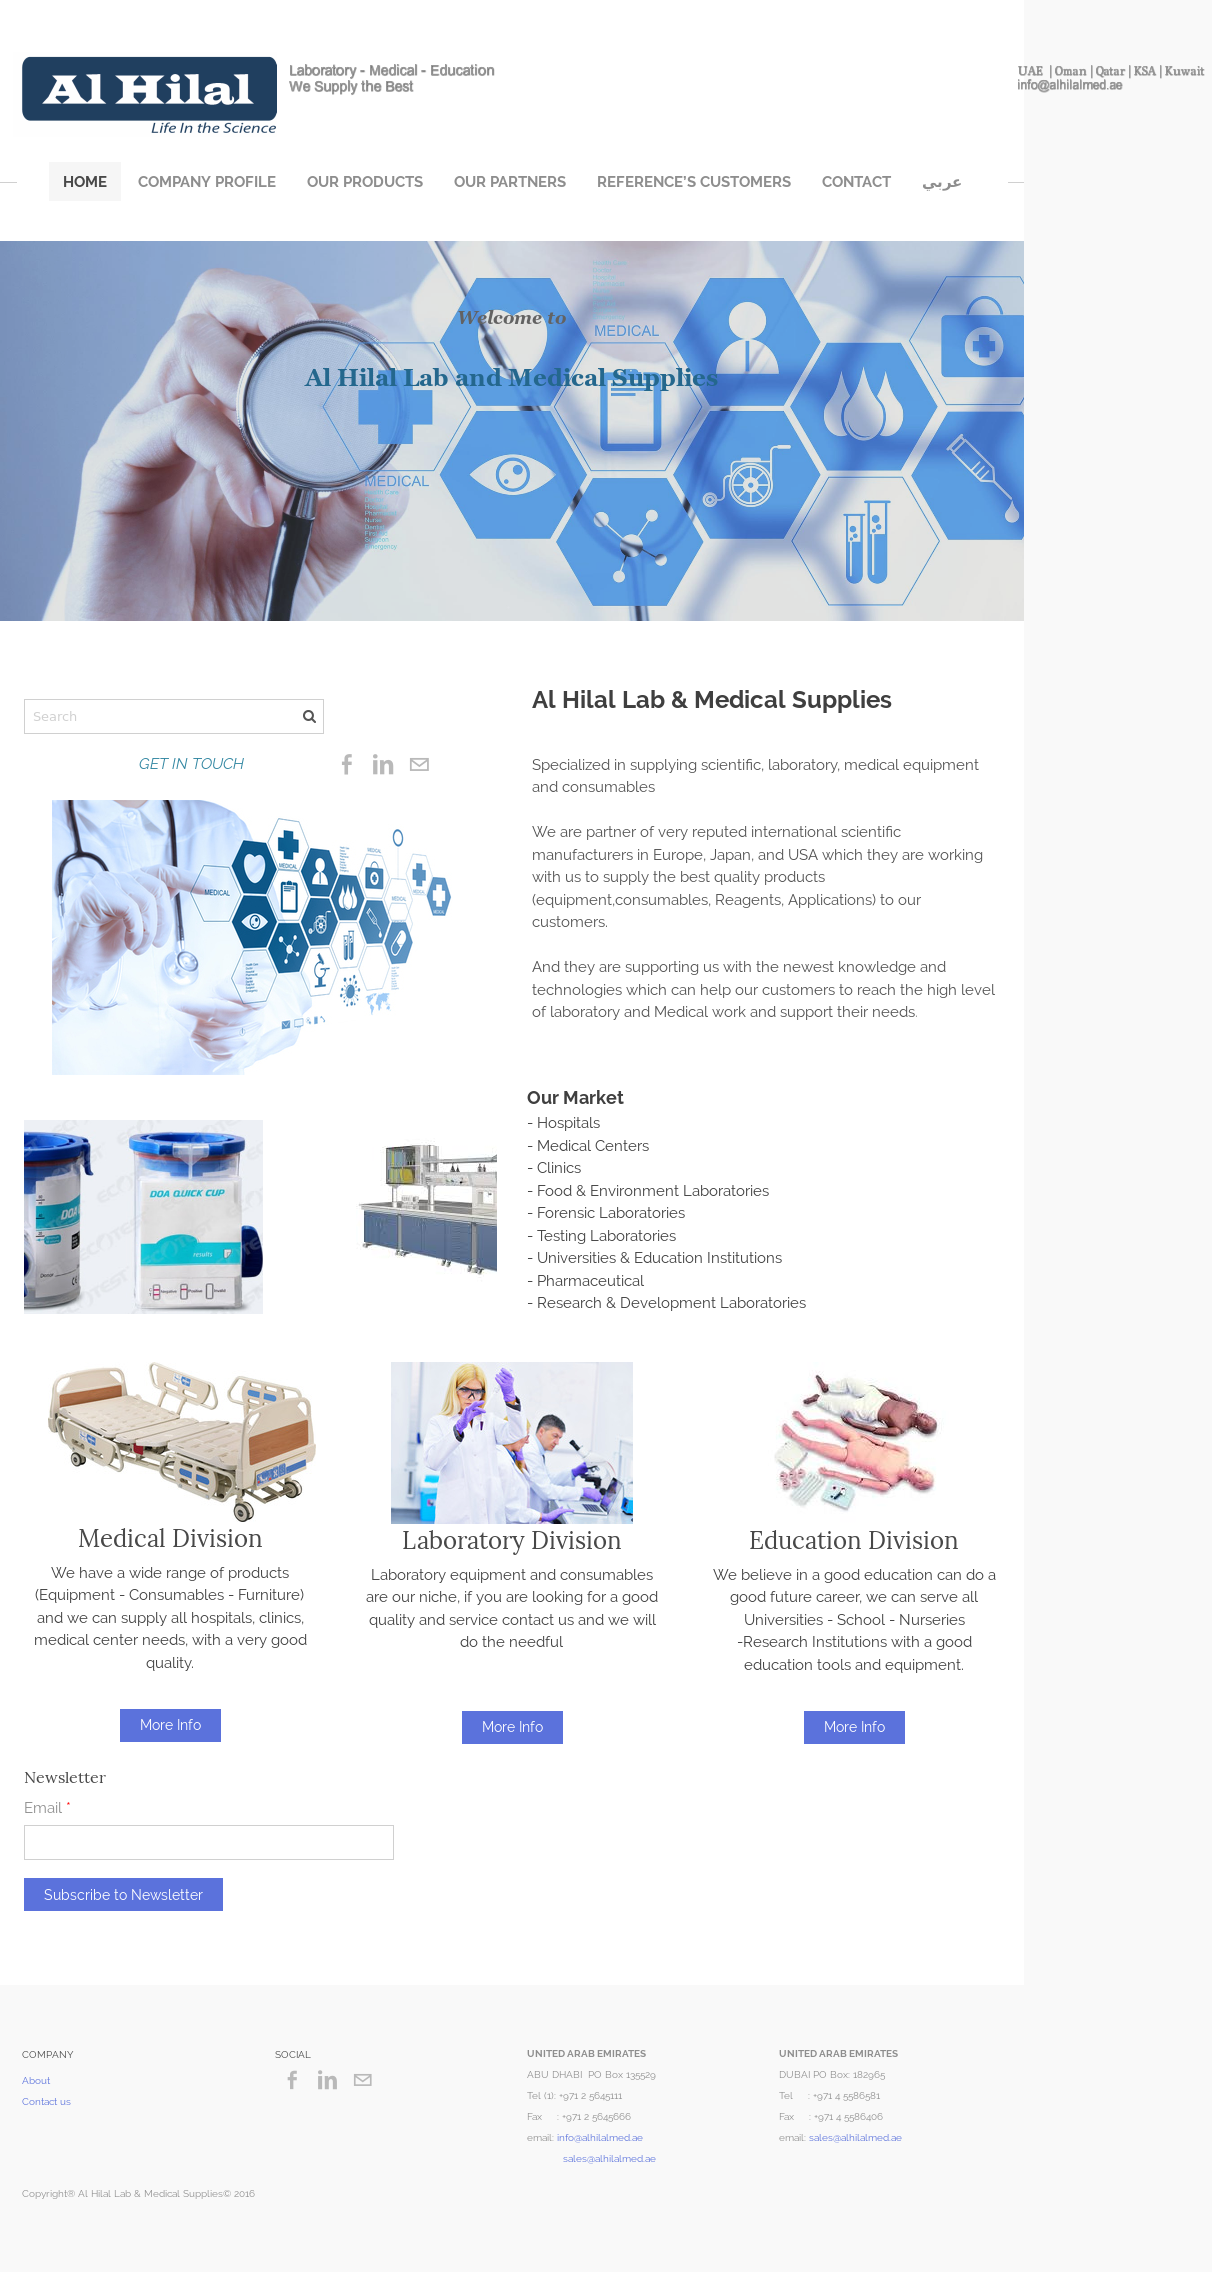 Al Hilal Lab & Medical Supplies Competitors, Revenue and Employees